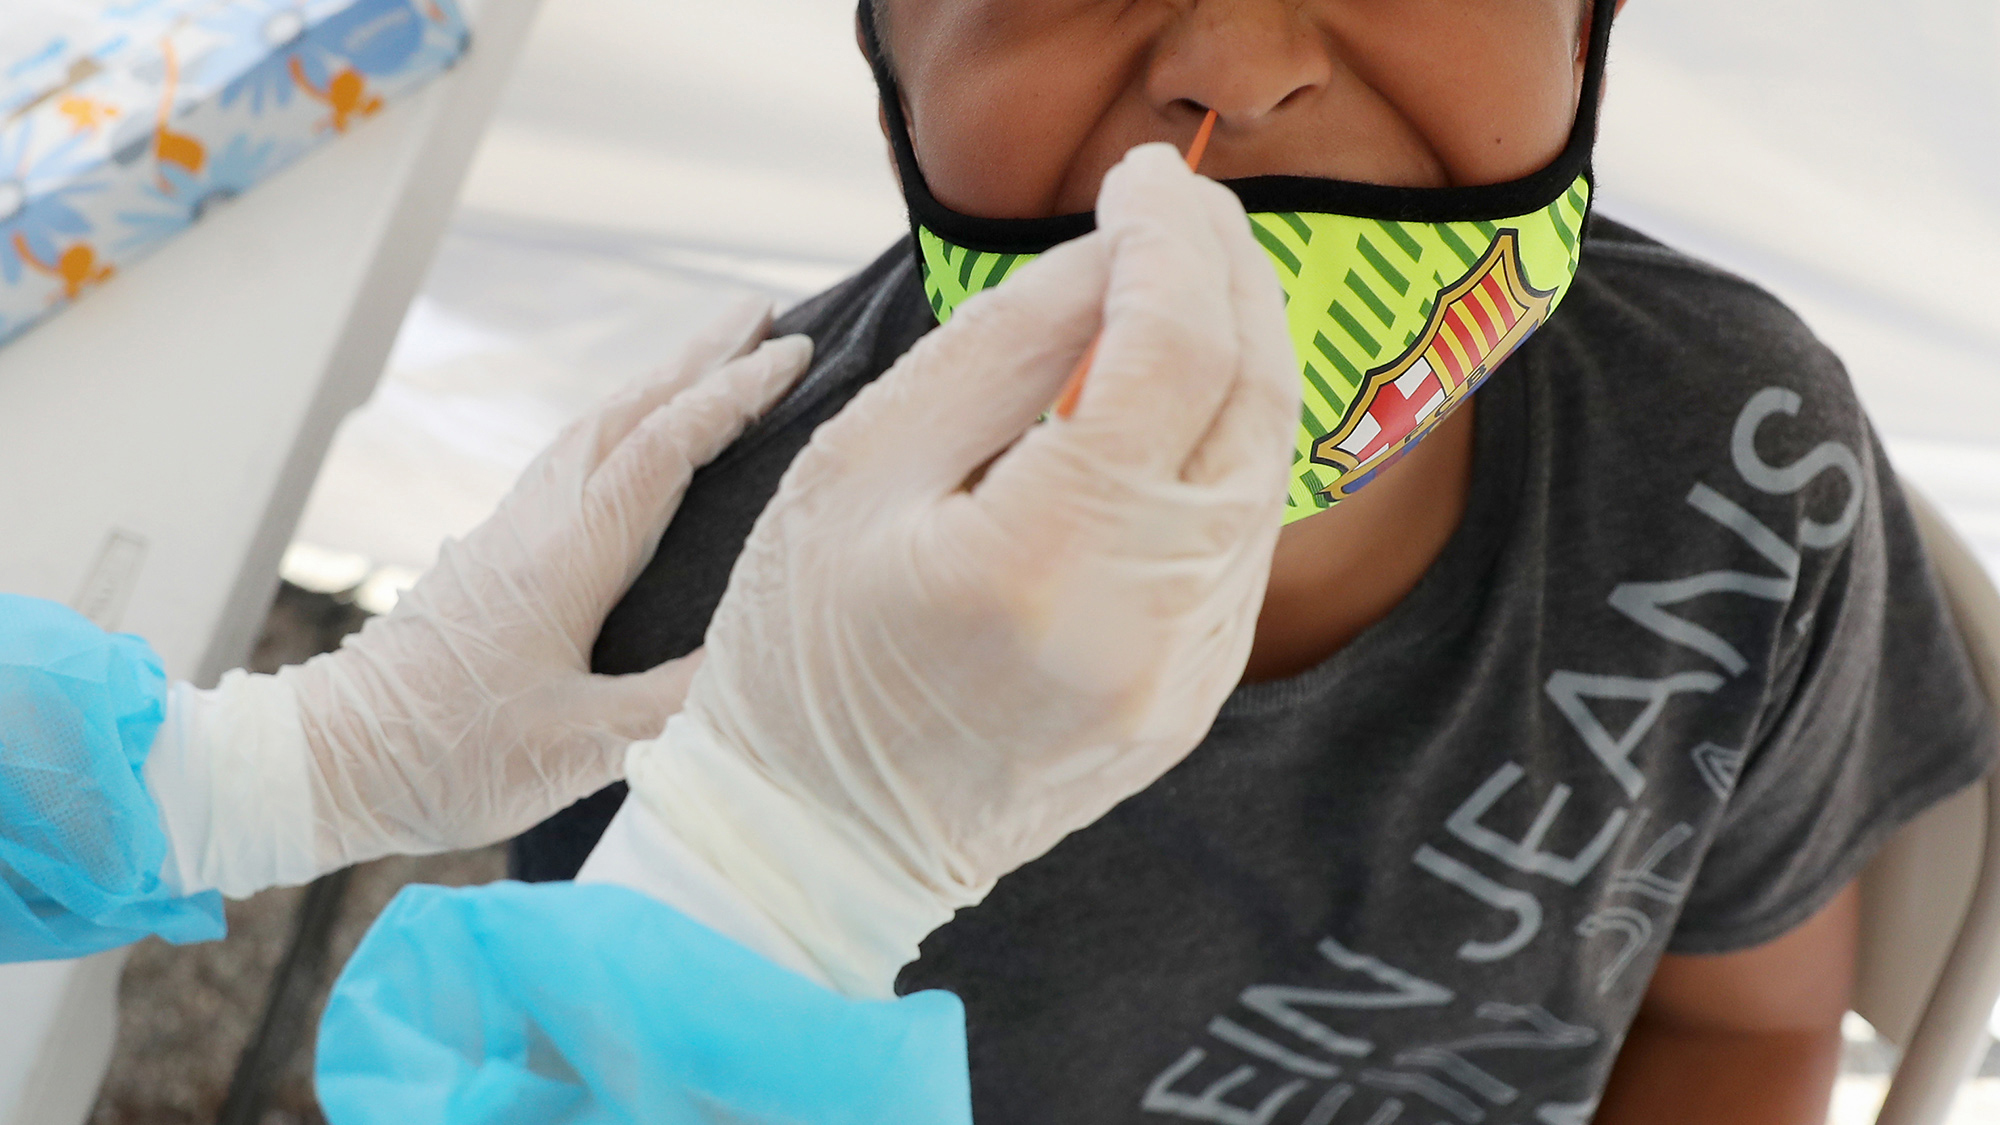 A boy receives a free Covid-19 test at a St. John's Well Child & Family Center mobile clinic set up outside Walker Temple AME Church in South Los Angeles amid the coronavirus pandemic on July 15.